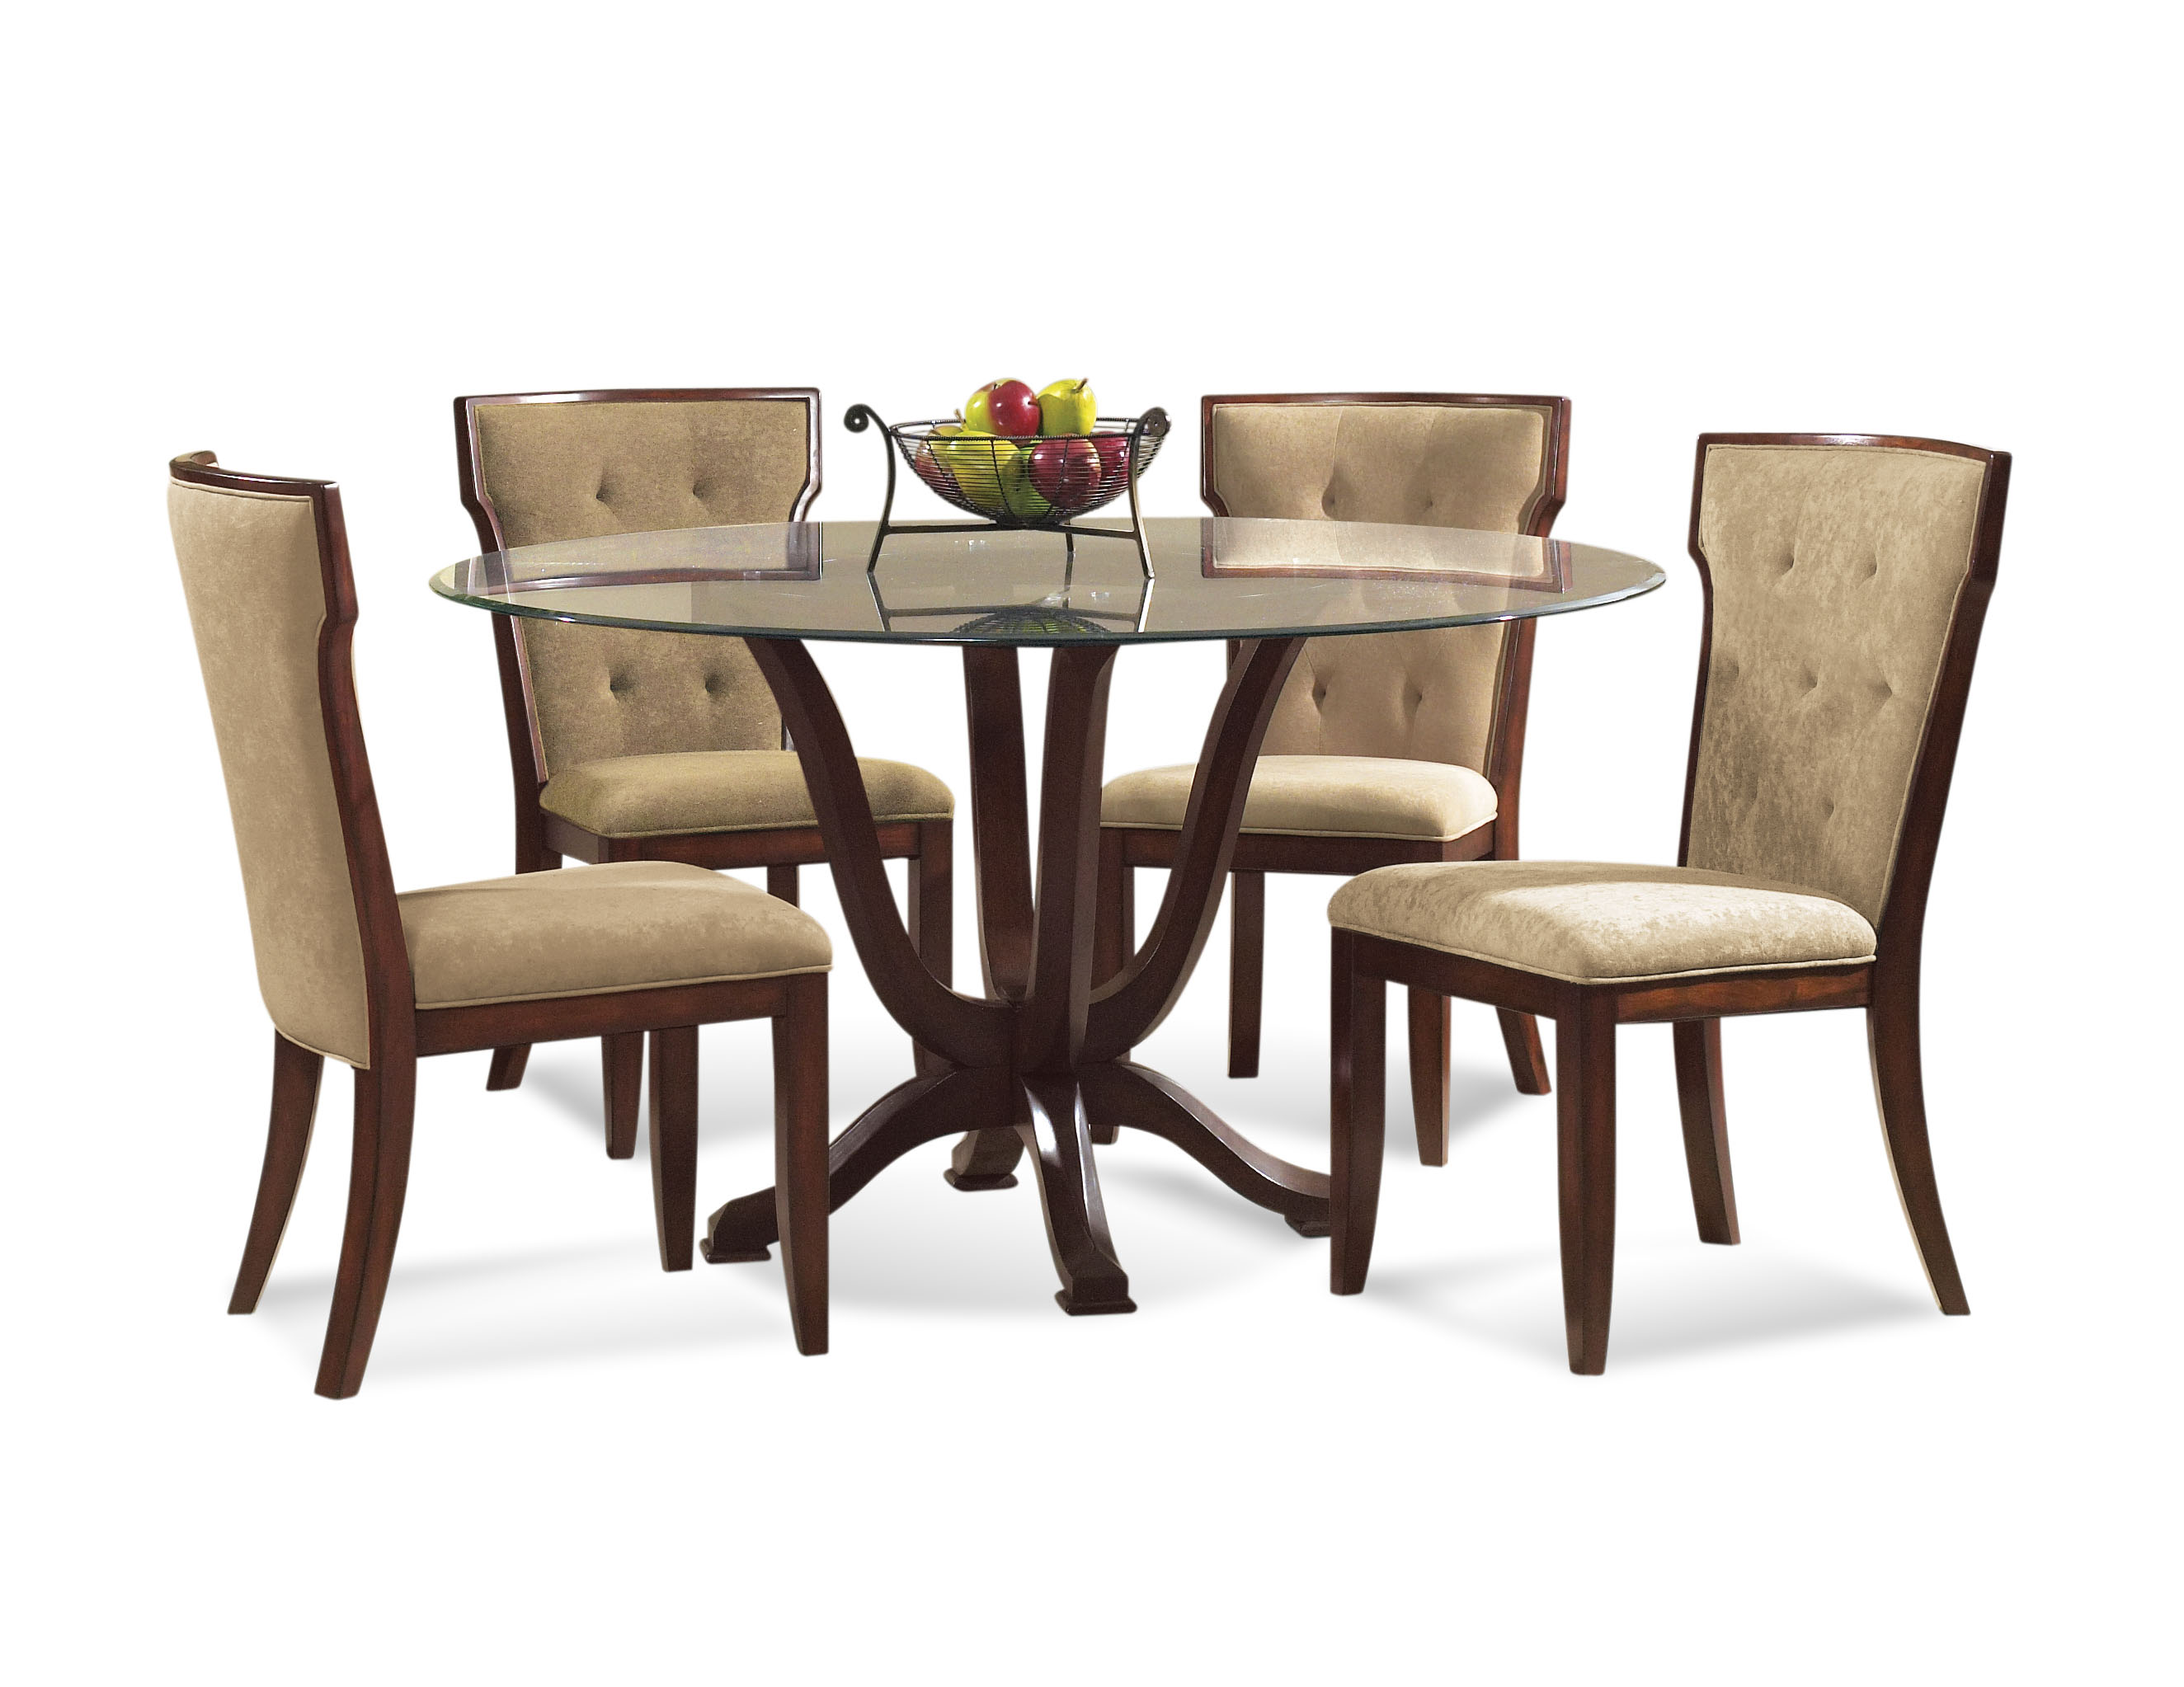 Old World Serenity Casual Dining Set by Bassett Mirror at Alison Craig Home Furnishings